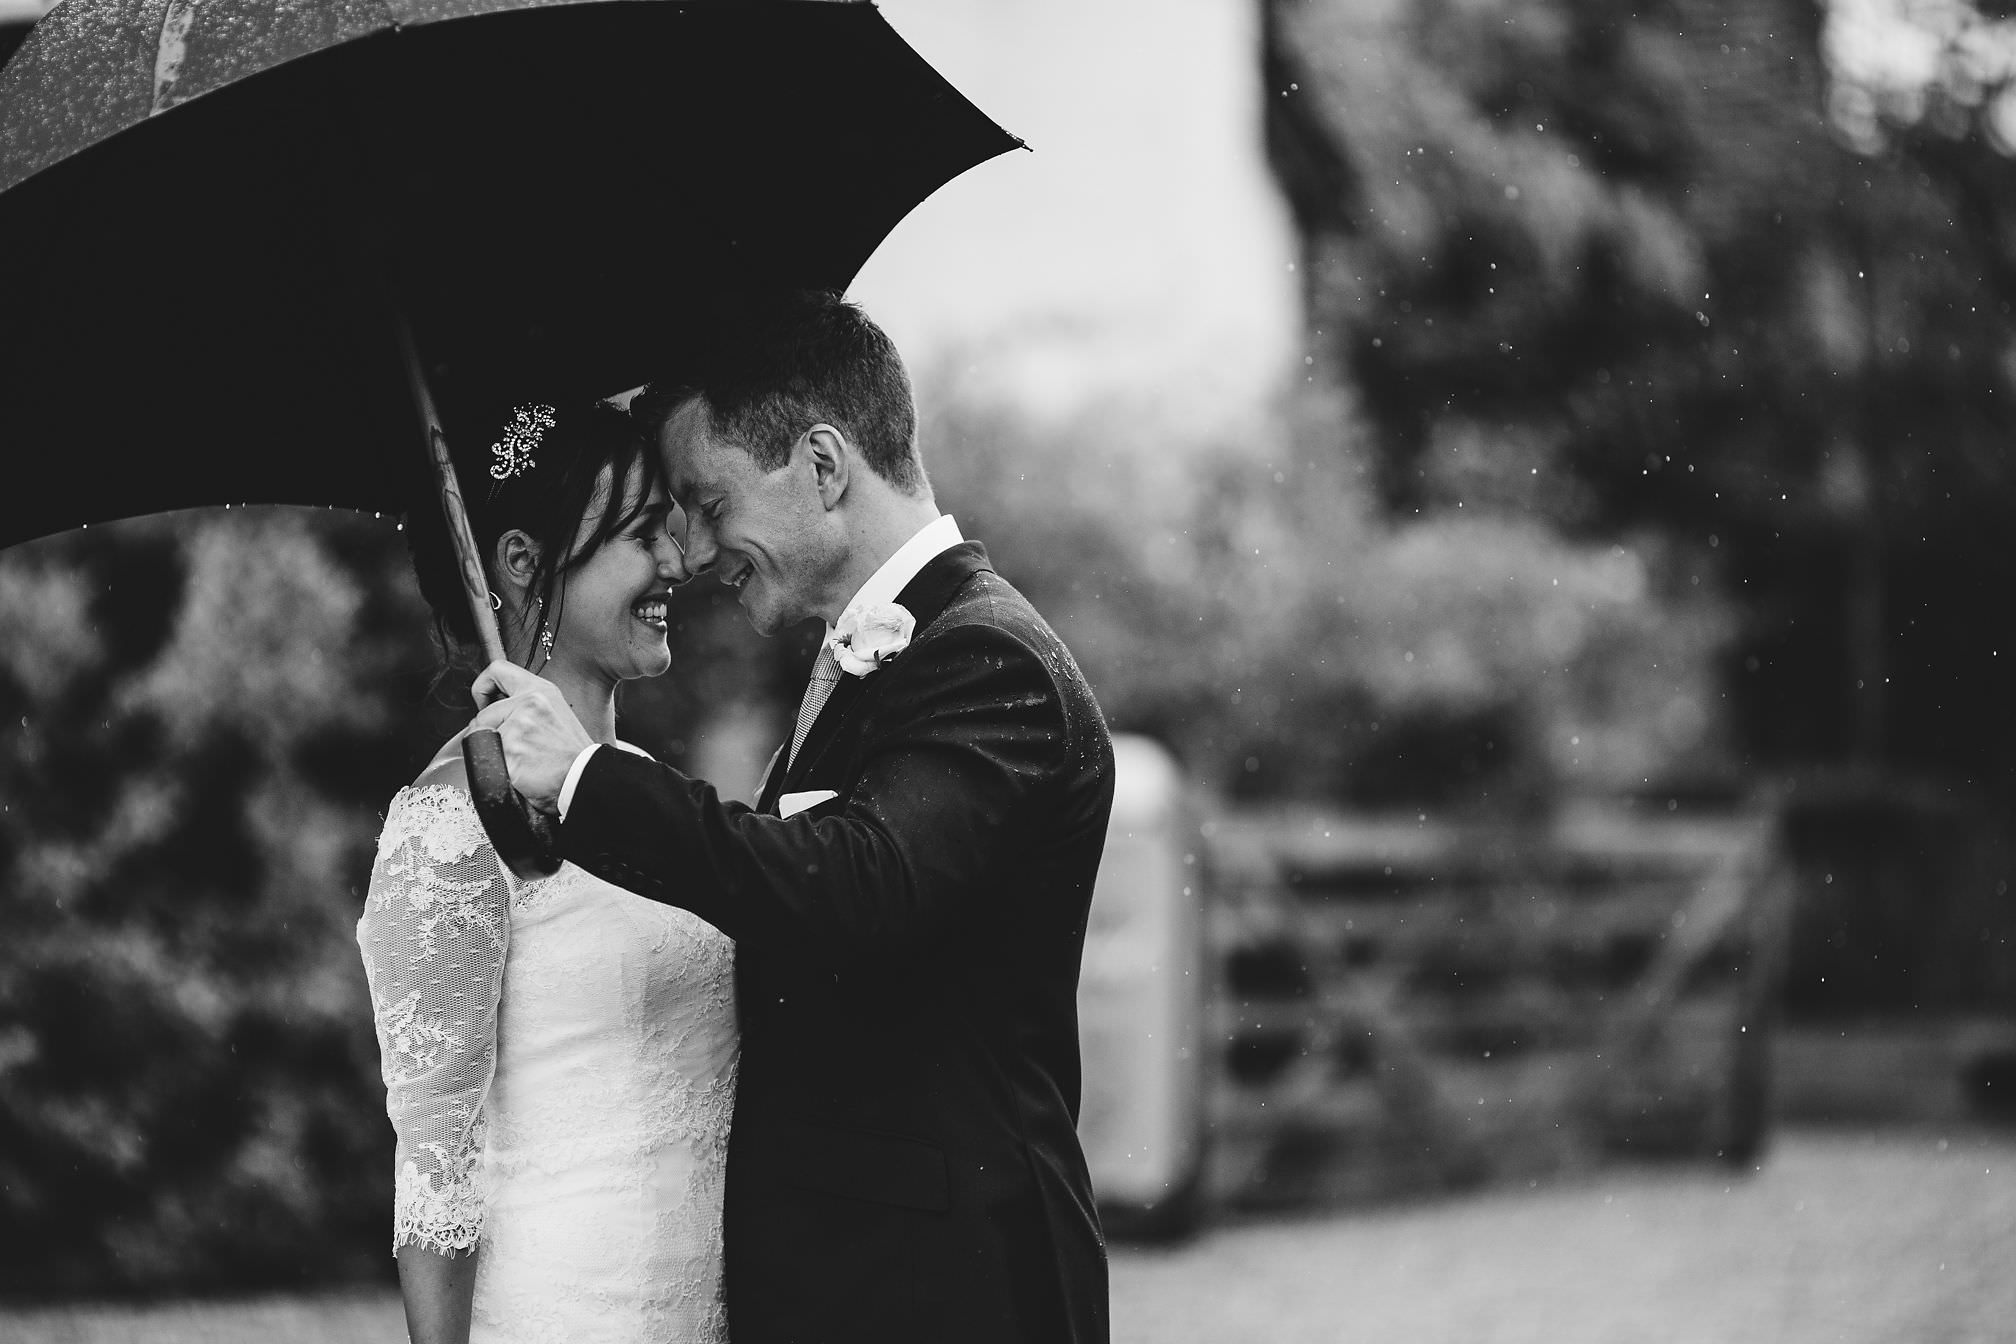 Rainy wedding portrait at Gate Street Barn